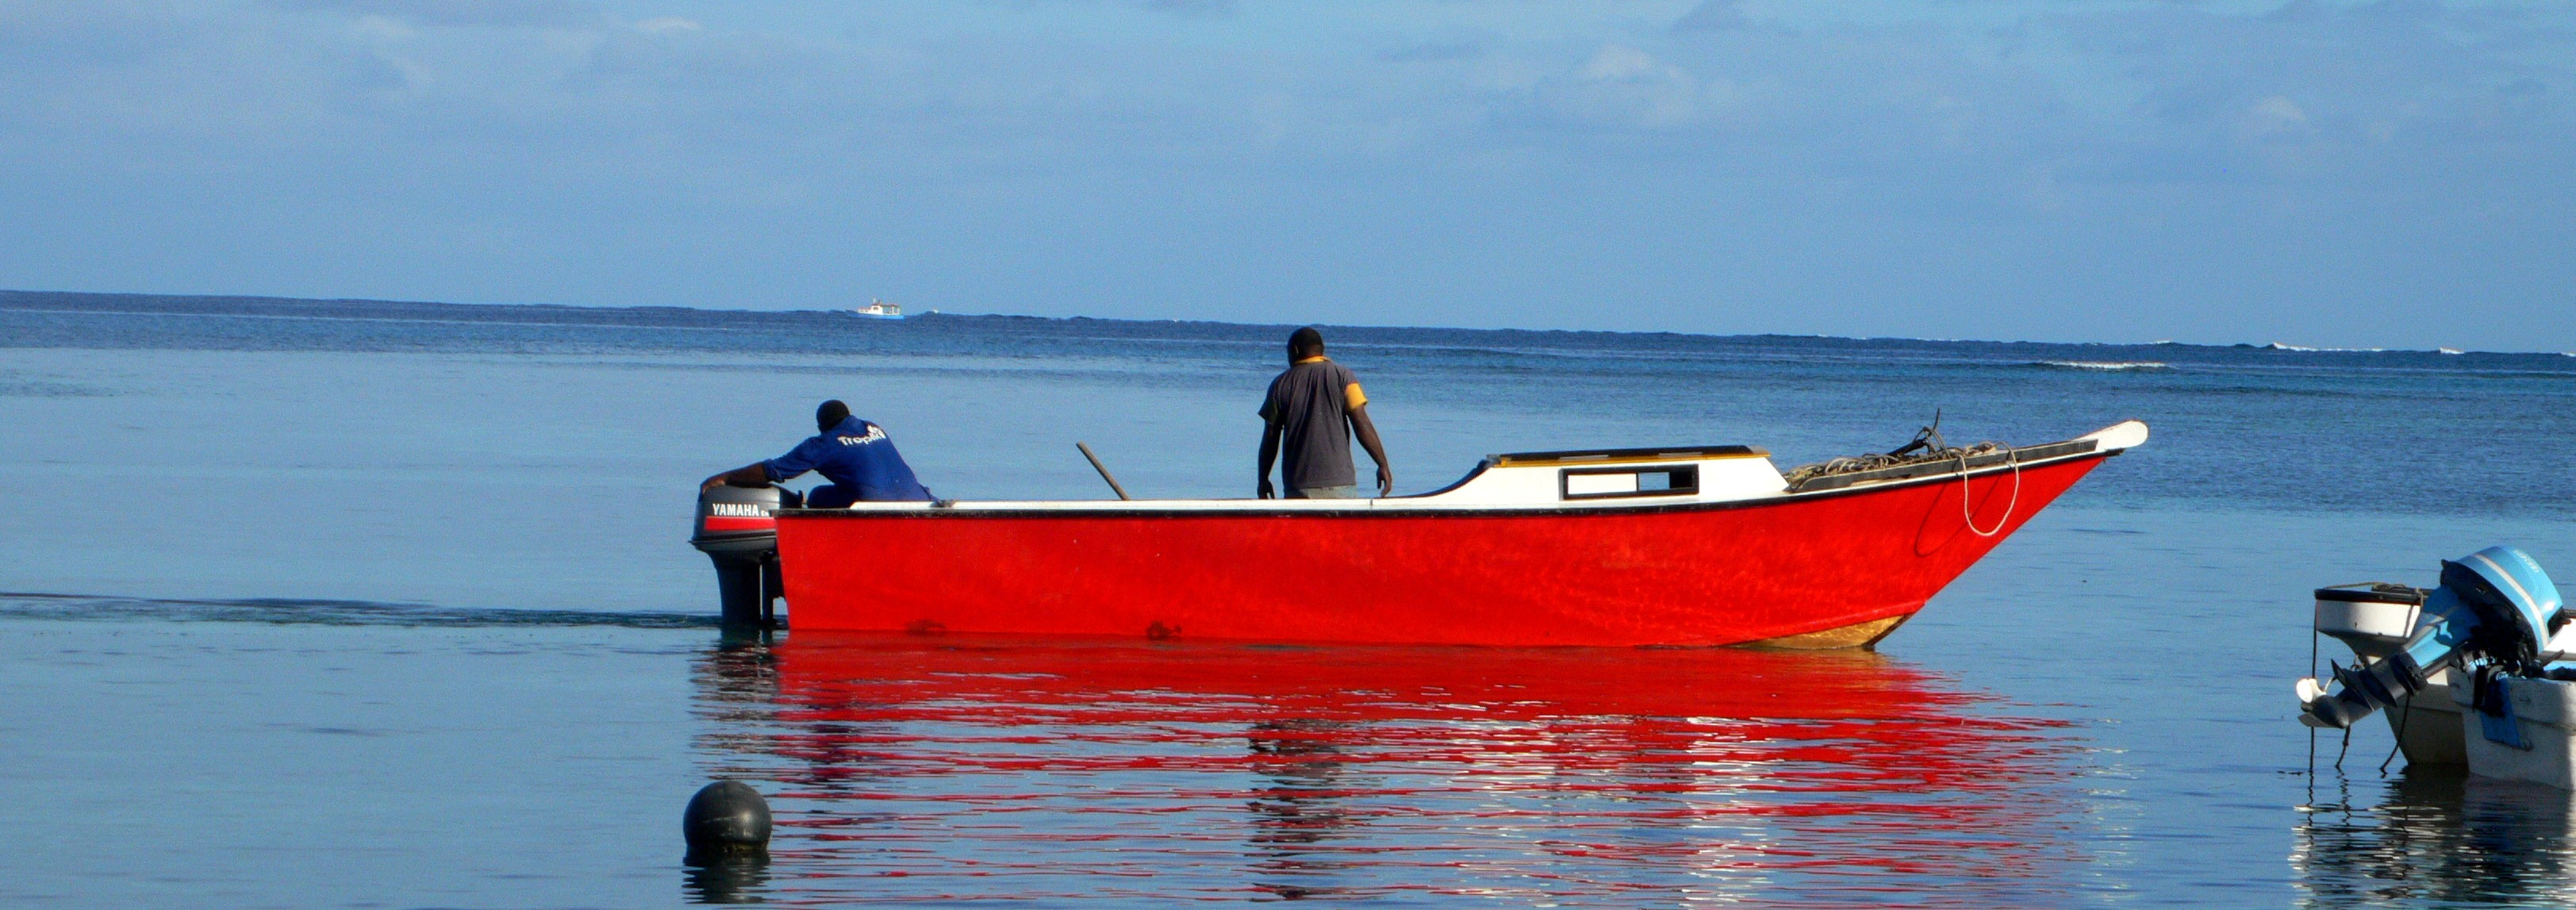 Fishing boat, Nacula Island, Fiji (Photo: Flickr/ Kanaka Rastamon)